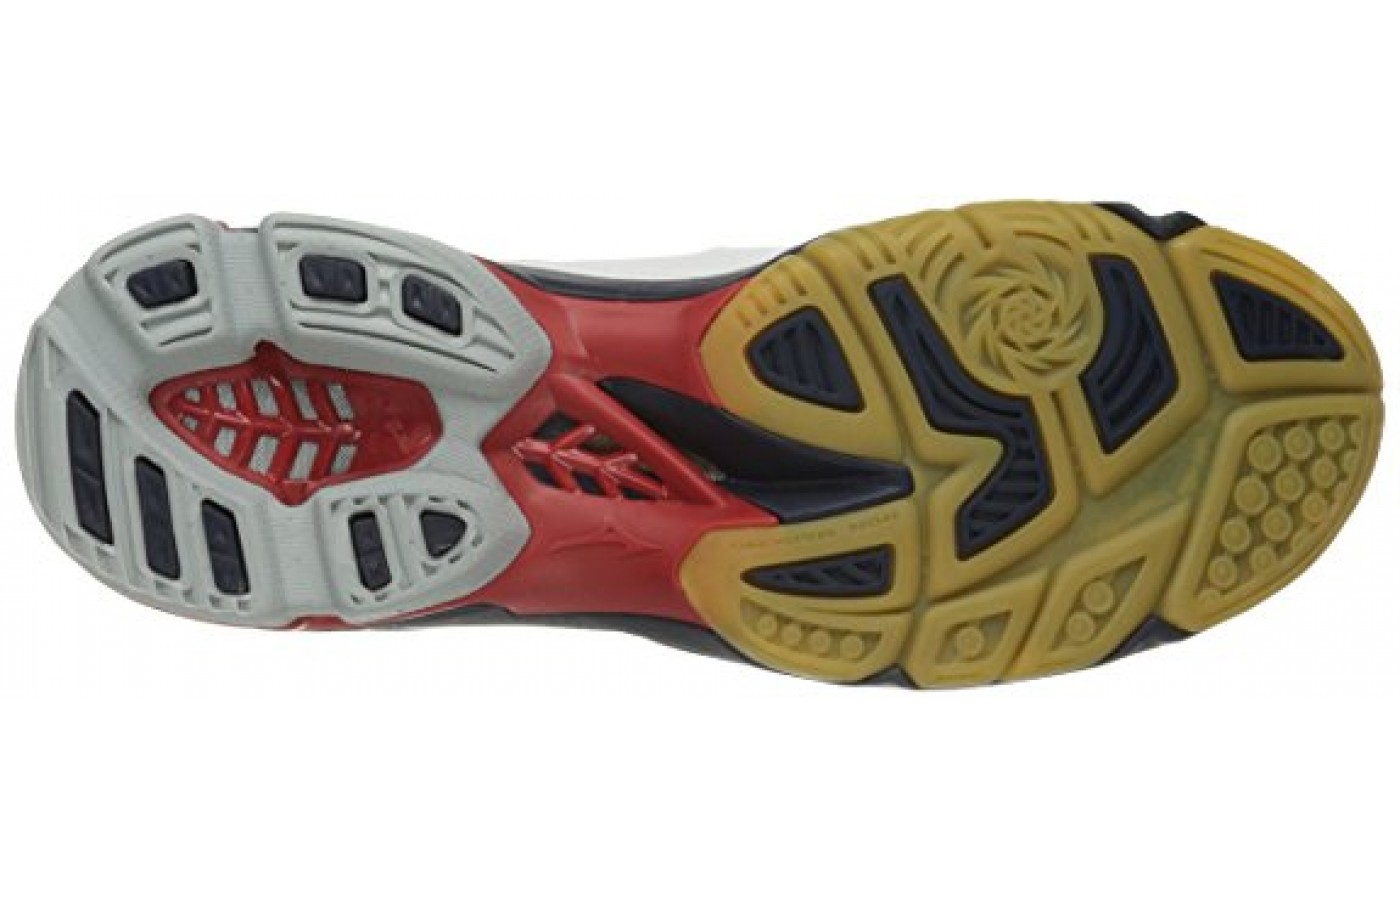 The Mizuno Wave Lightning Z3 offers support for a softer landing